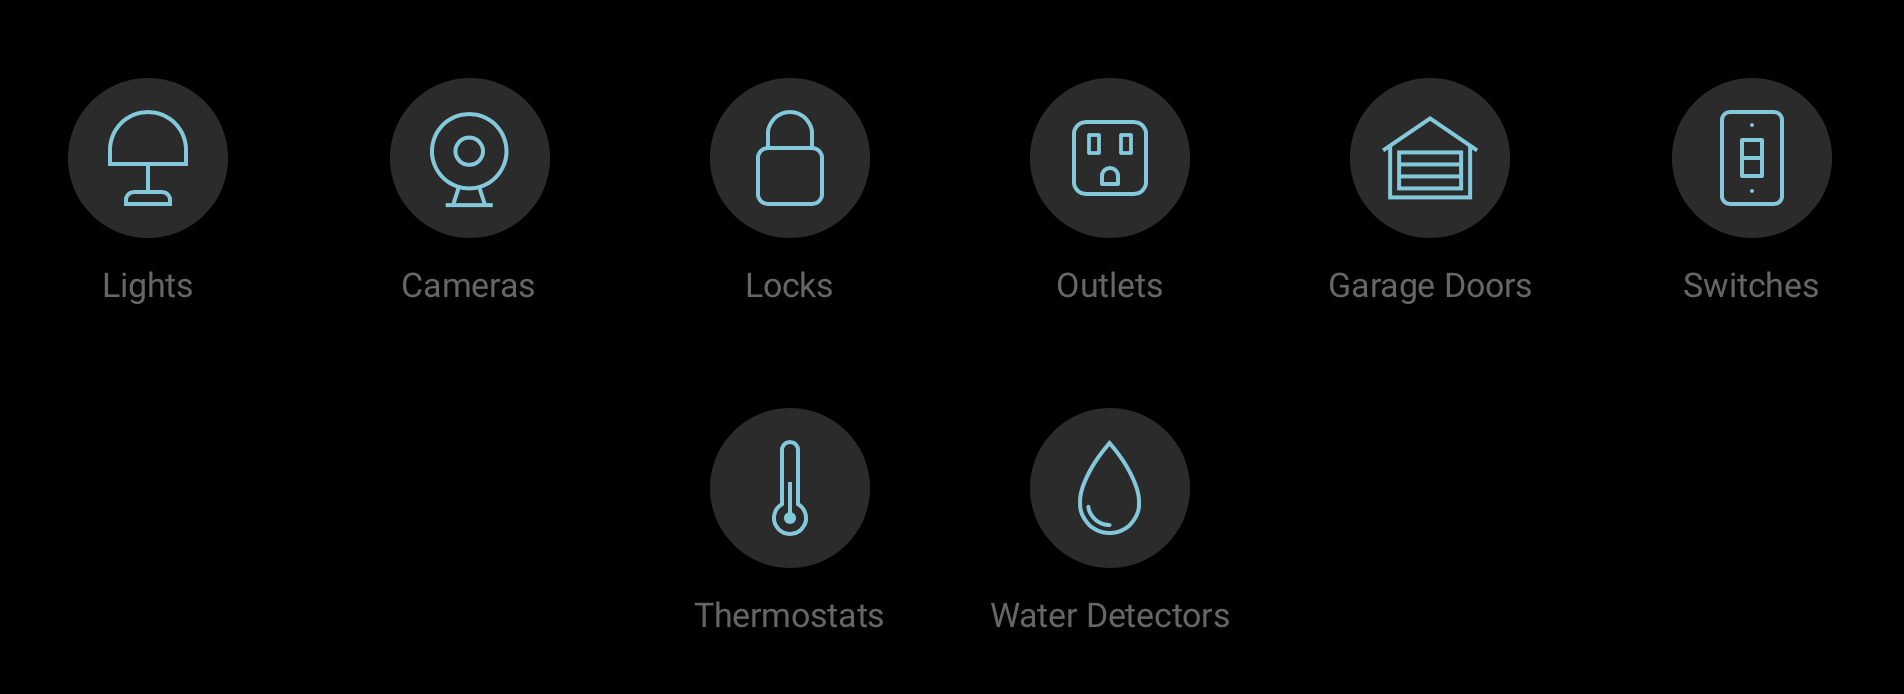 Abode HomeKit security system